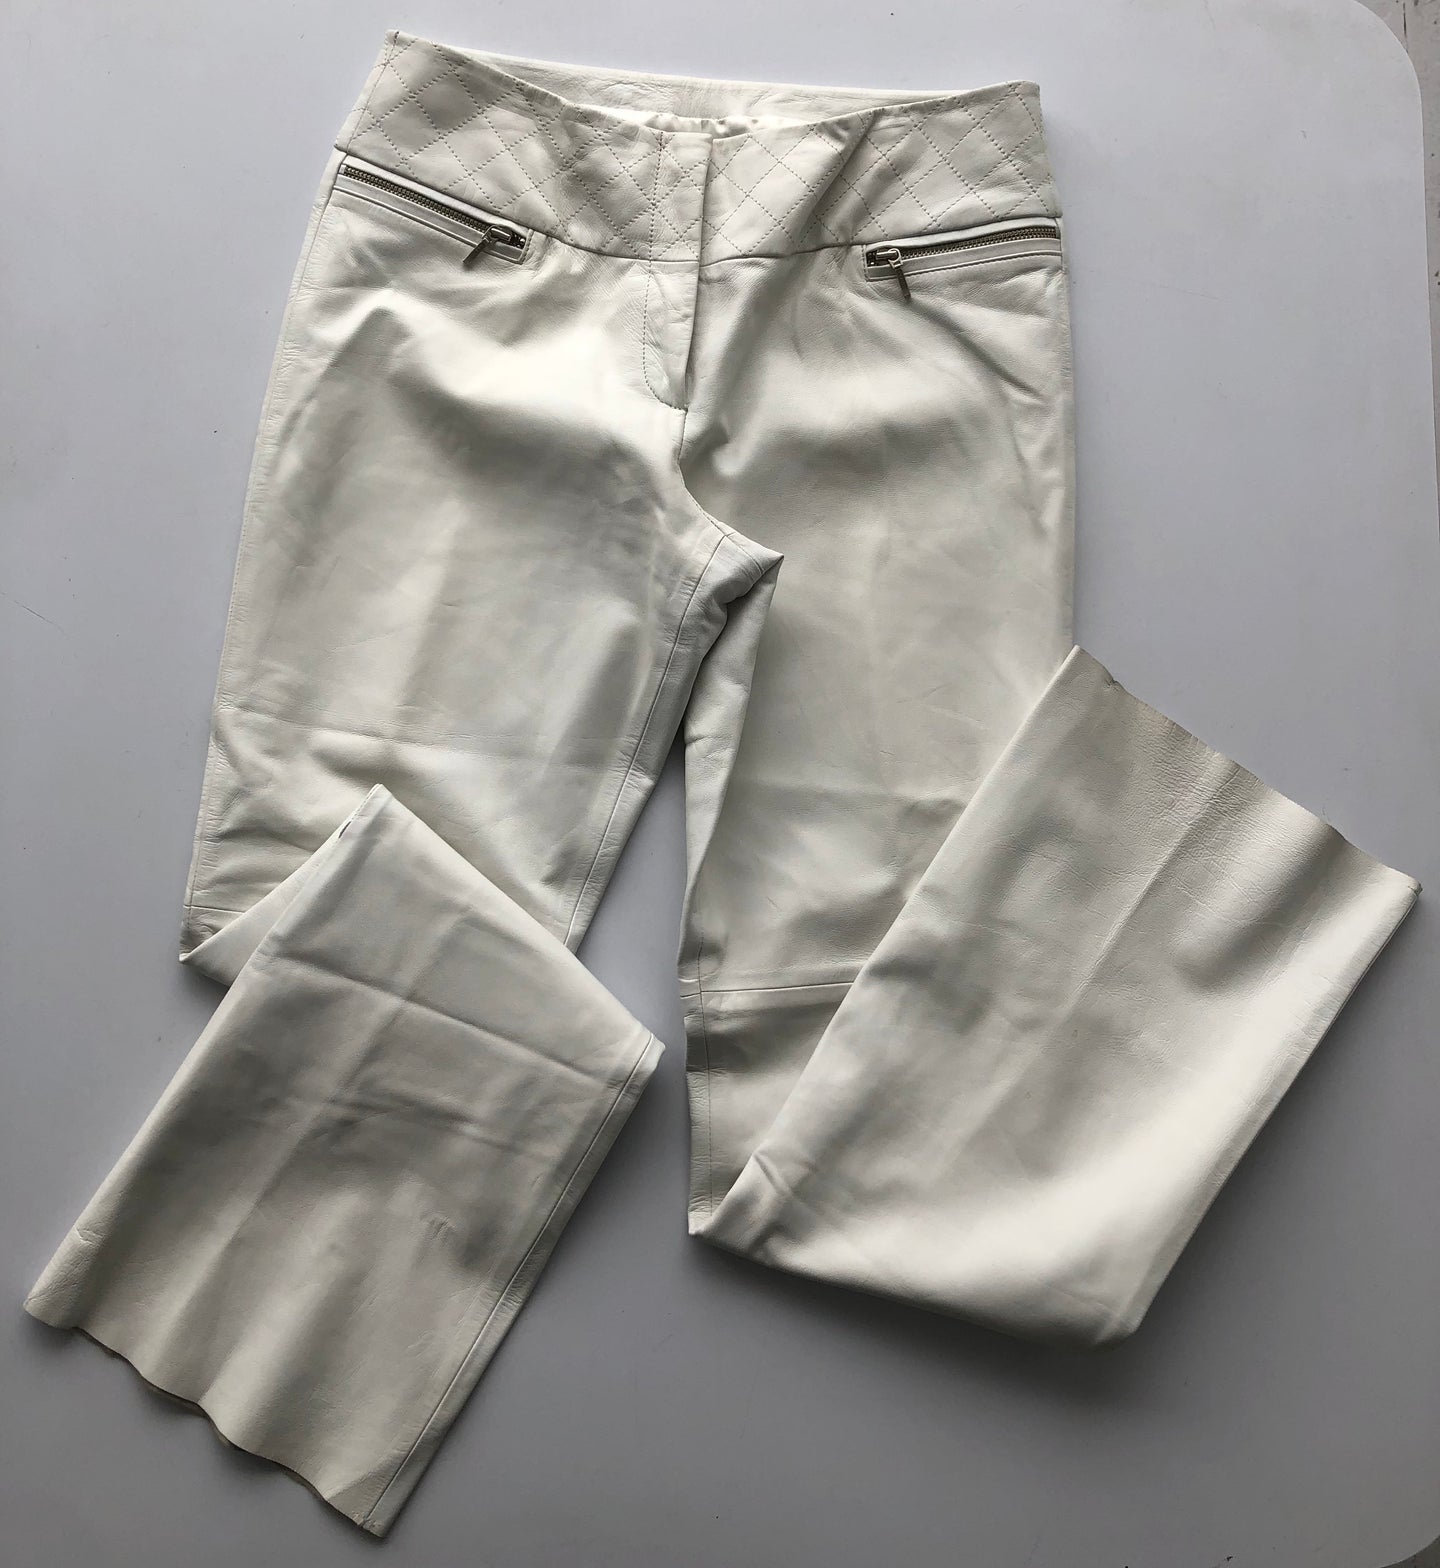 caché white leather pants - as is